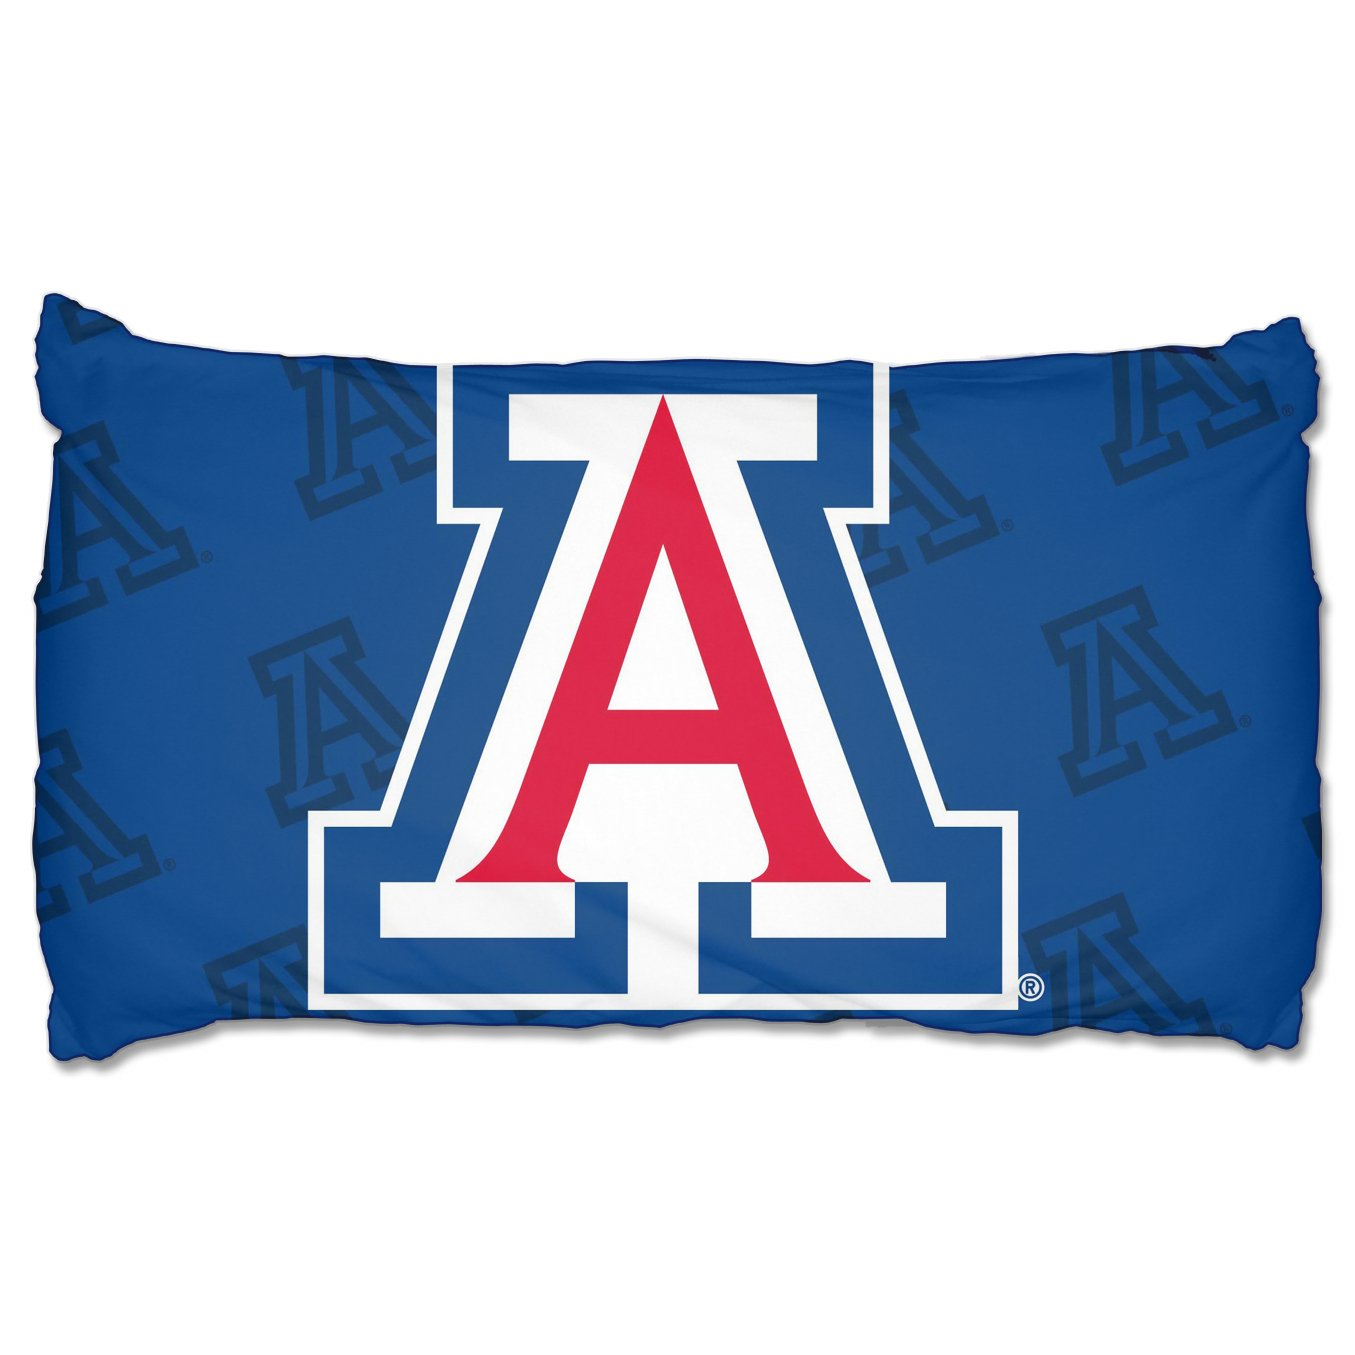 The Northwest Company Officially Licensed NCAA Arizona Wildcats Pillowcase Set, Blue, 20'' x 30'' by The Northwest Company